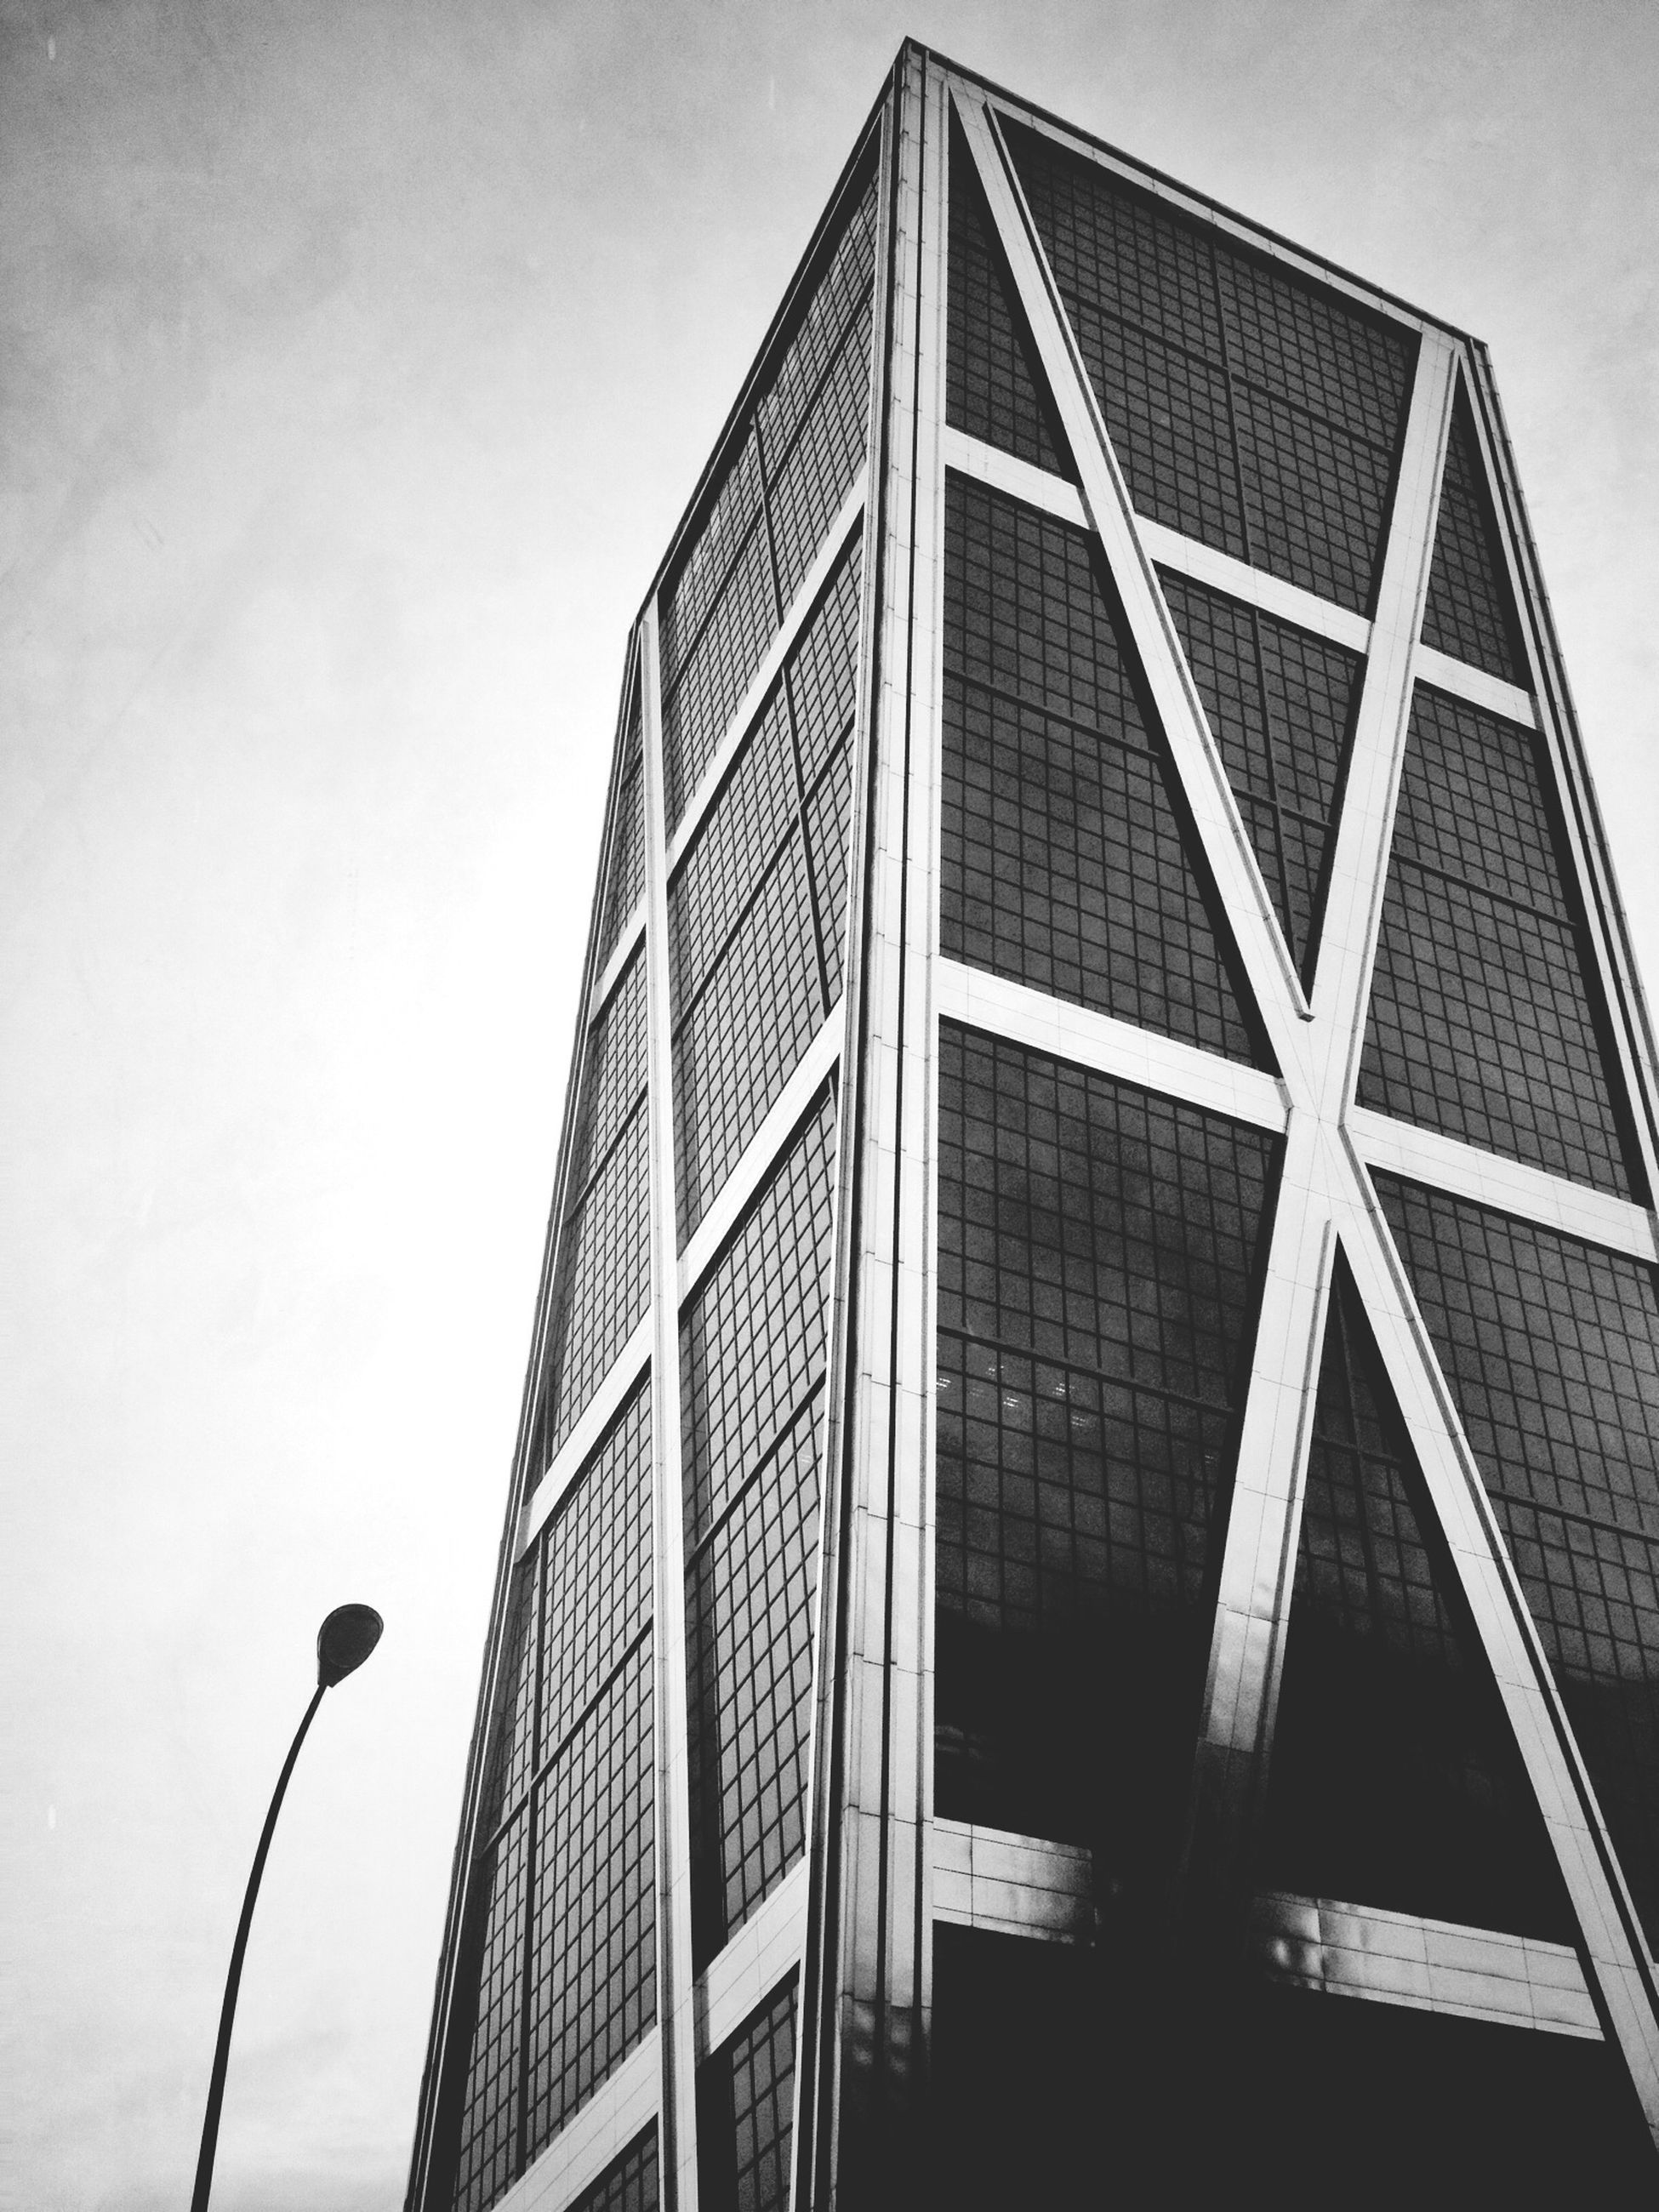 low angle view, architecture, building exterior, built structure, modern, office building, sky, building, tall - high, city, tower, skyscraper, street light, day, outdoors, glass - material, no people, window, tall, clear sky